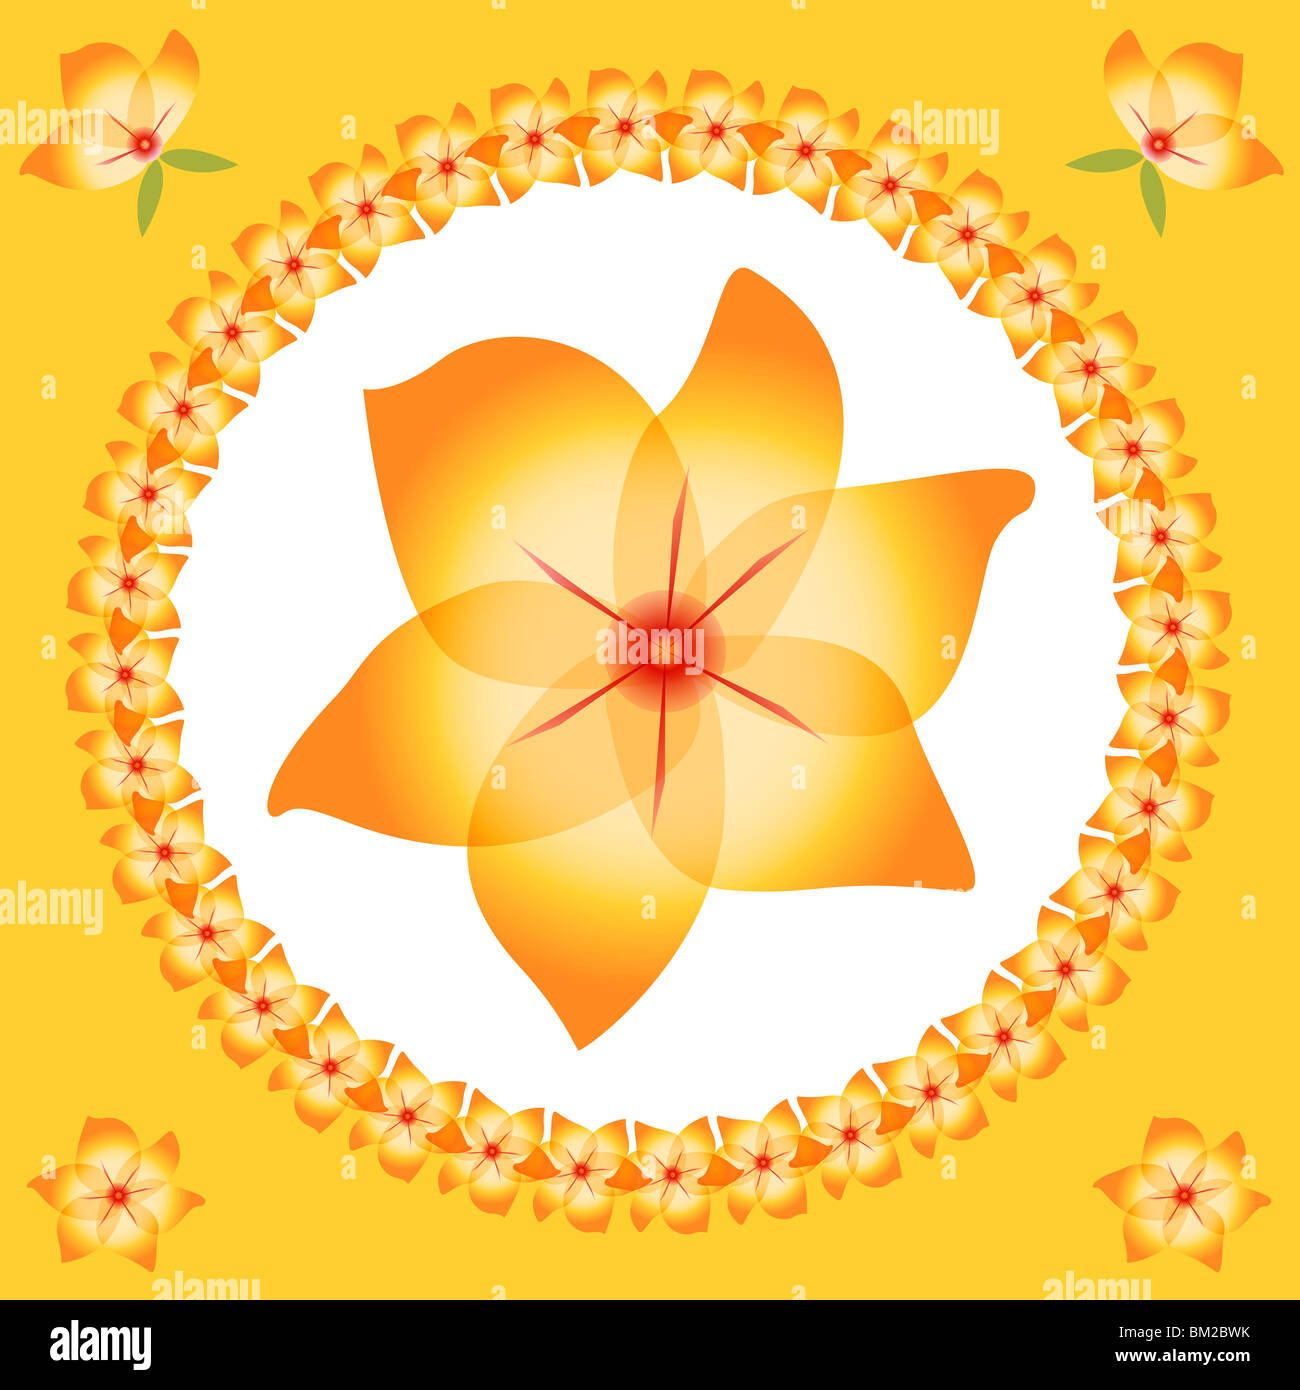 Pretty Orange And Yellow Flowers In A Circular Shape With A Large